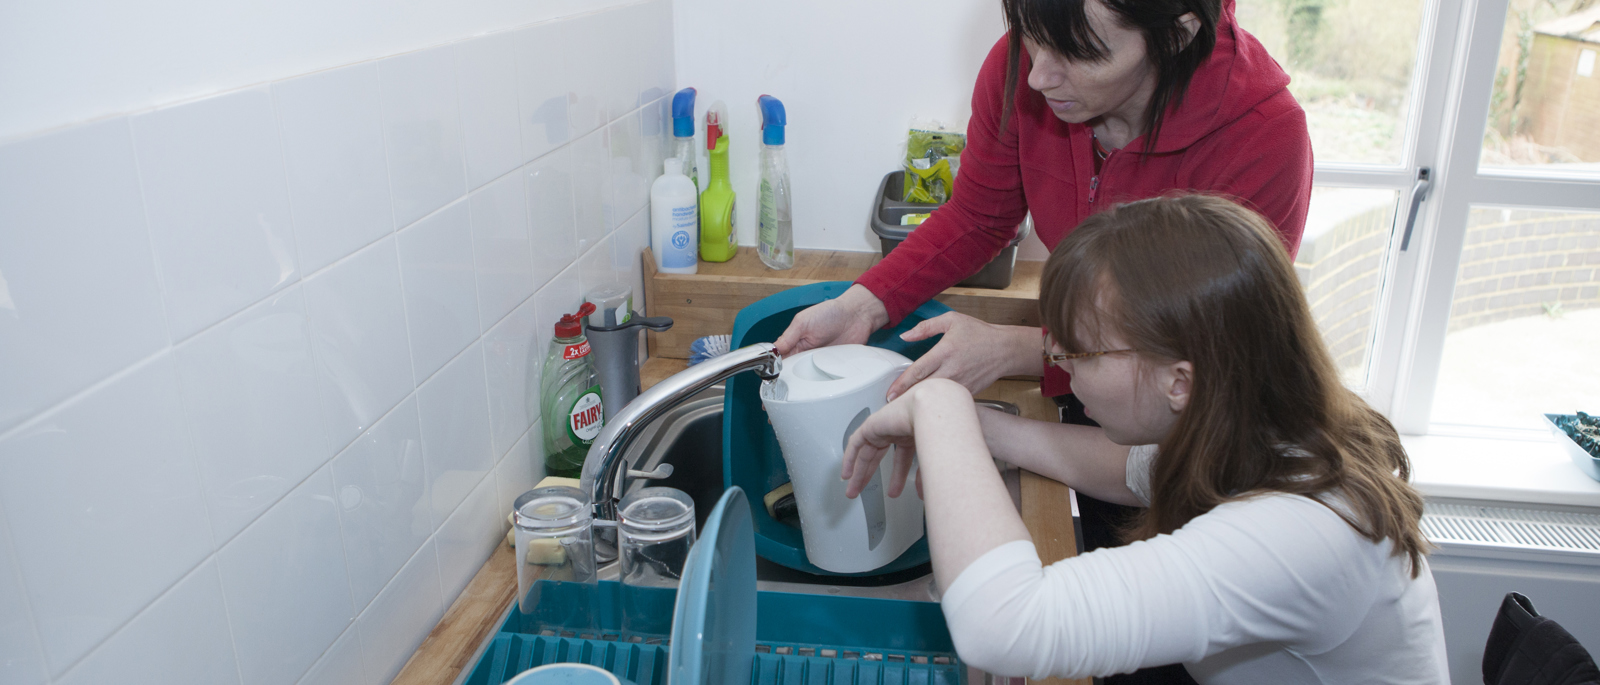 Student being supported when cooking by a member of the support team